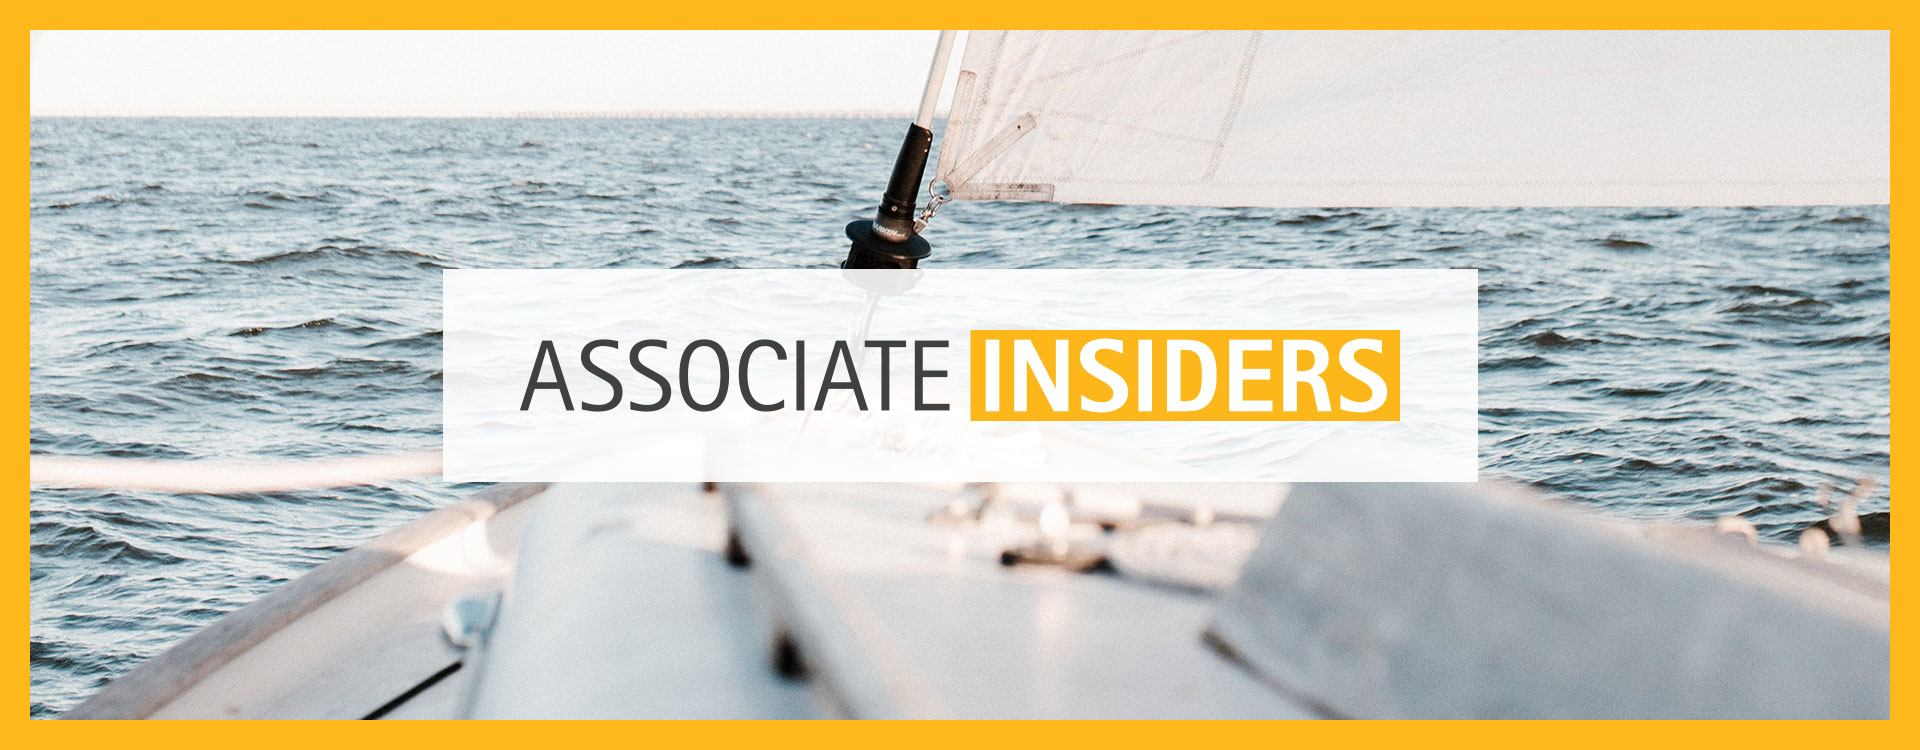 Associate-Insiders-Chart-Your-Course-Event-Banner.jpg